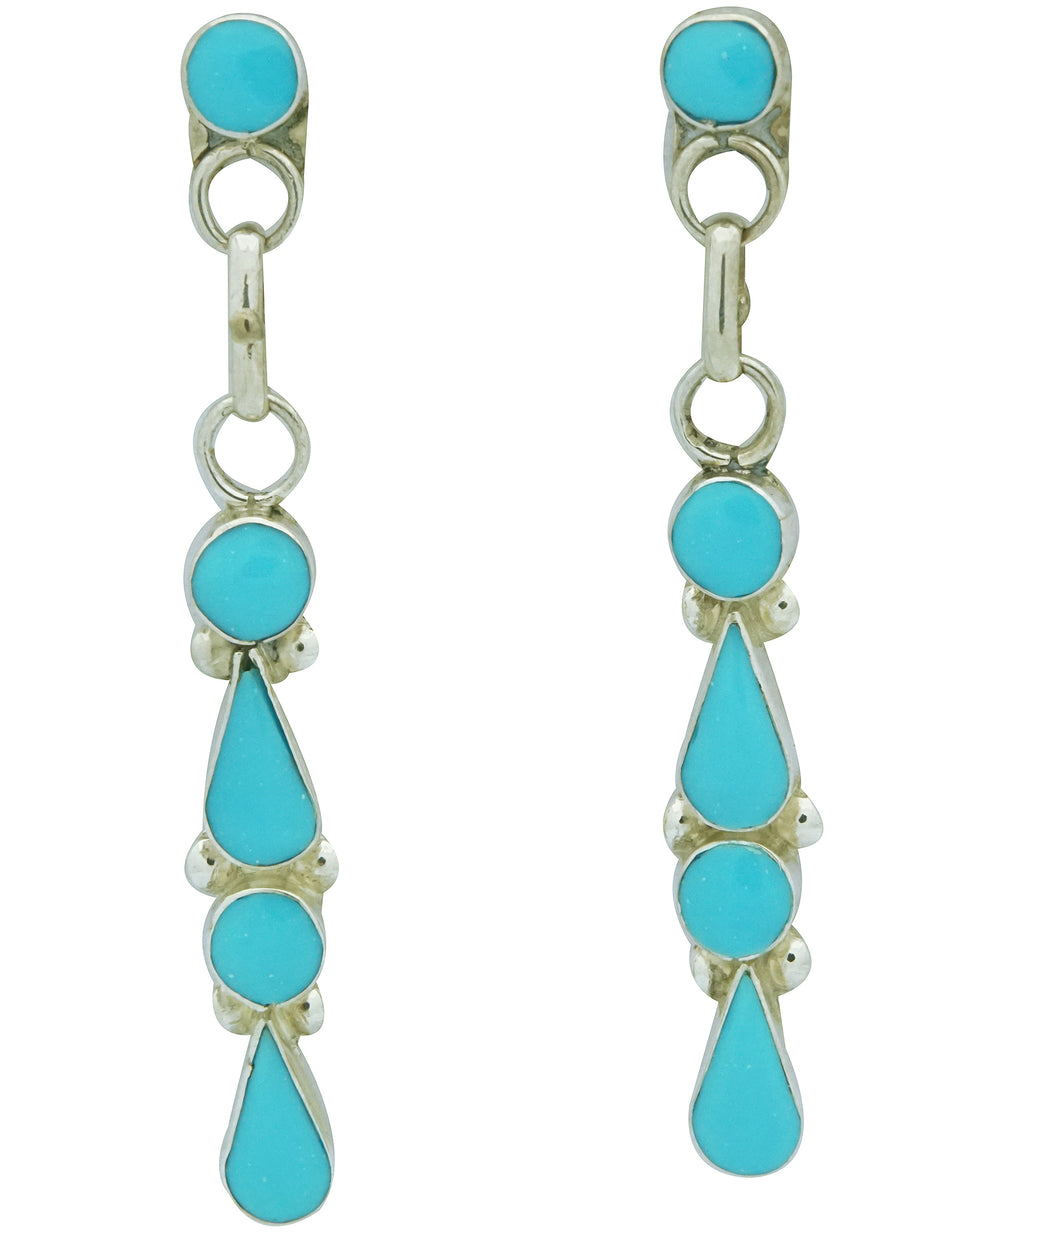 Iva Niiha, Dangle Earrings, Sleeping Beauty Turquoise, Zuni Handmade, 2 1/8